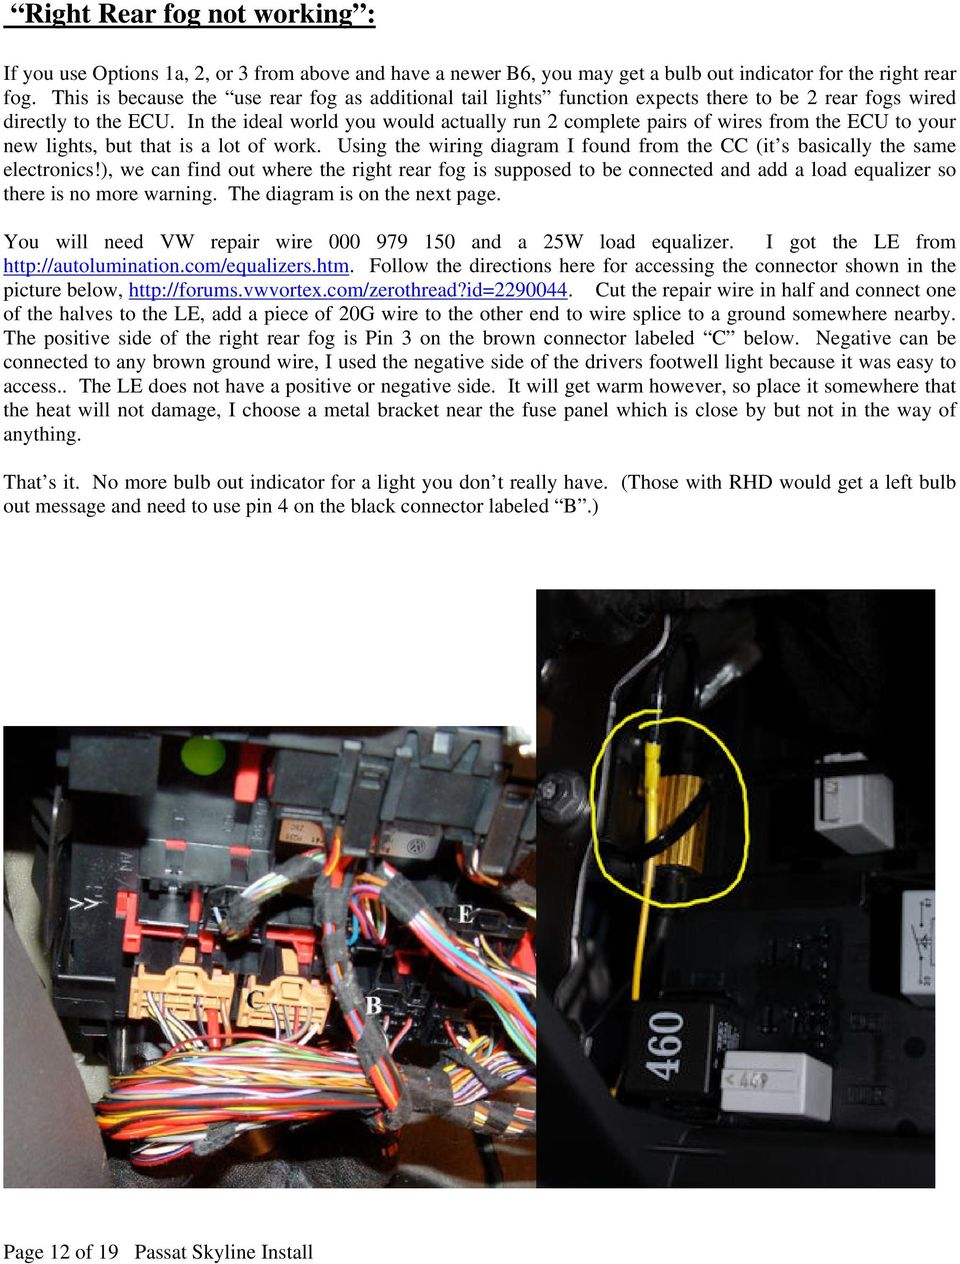 Passat B6 3c Inner Tail Light Install Aka Skyline Lights Updated 2013 Wiring Diagram In The Ideal World You Would Actually Run 2 Complete Pairs Of Wires From Ecu